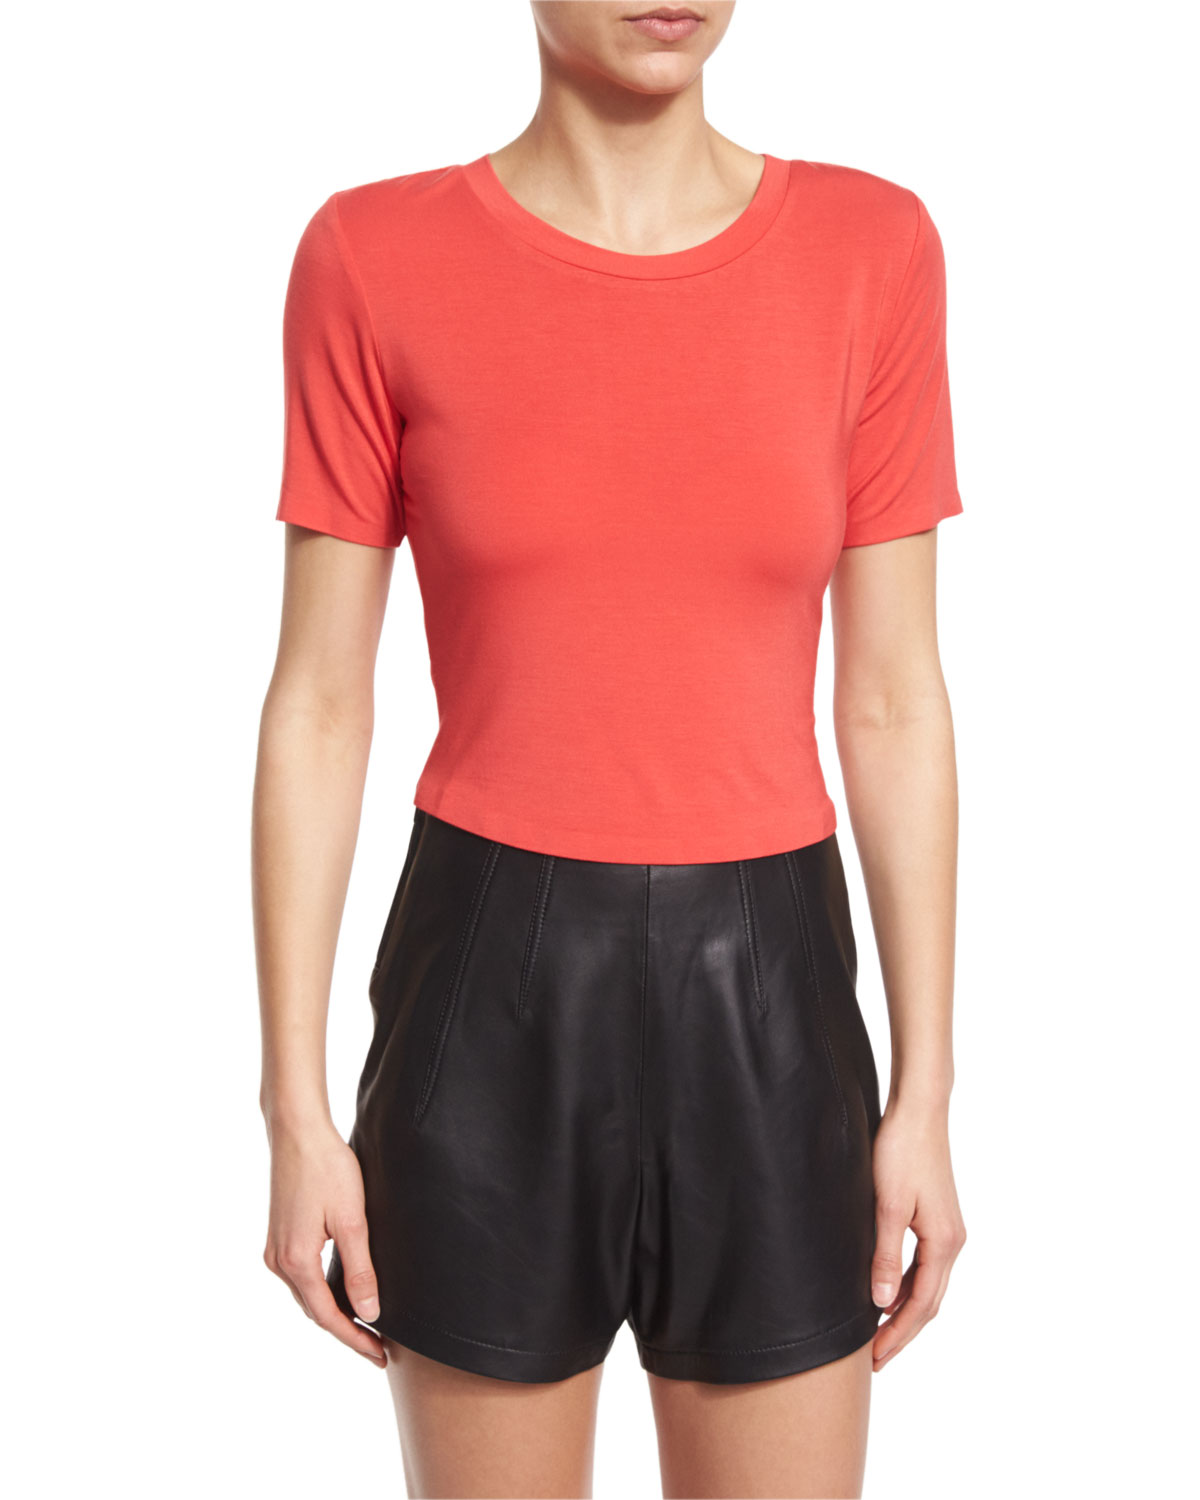 af534960da2 Kendall + Kylie Short-Sleeve Cropped T-Shirt   Mid-Rise Leather ...